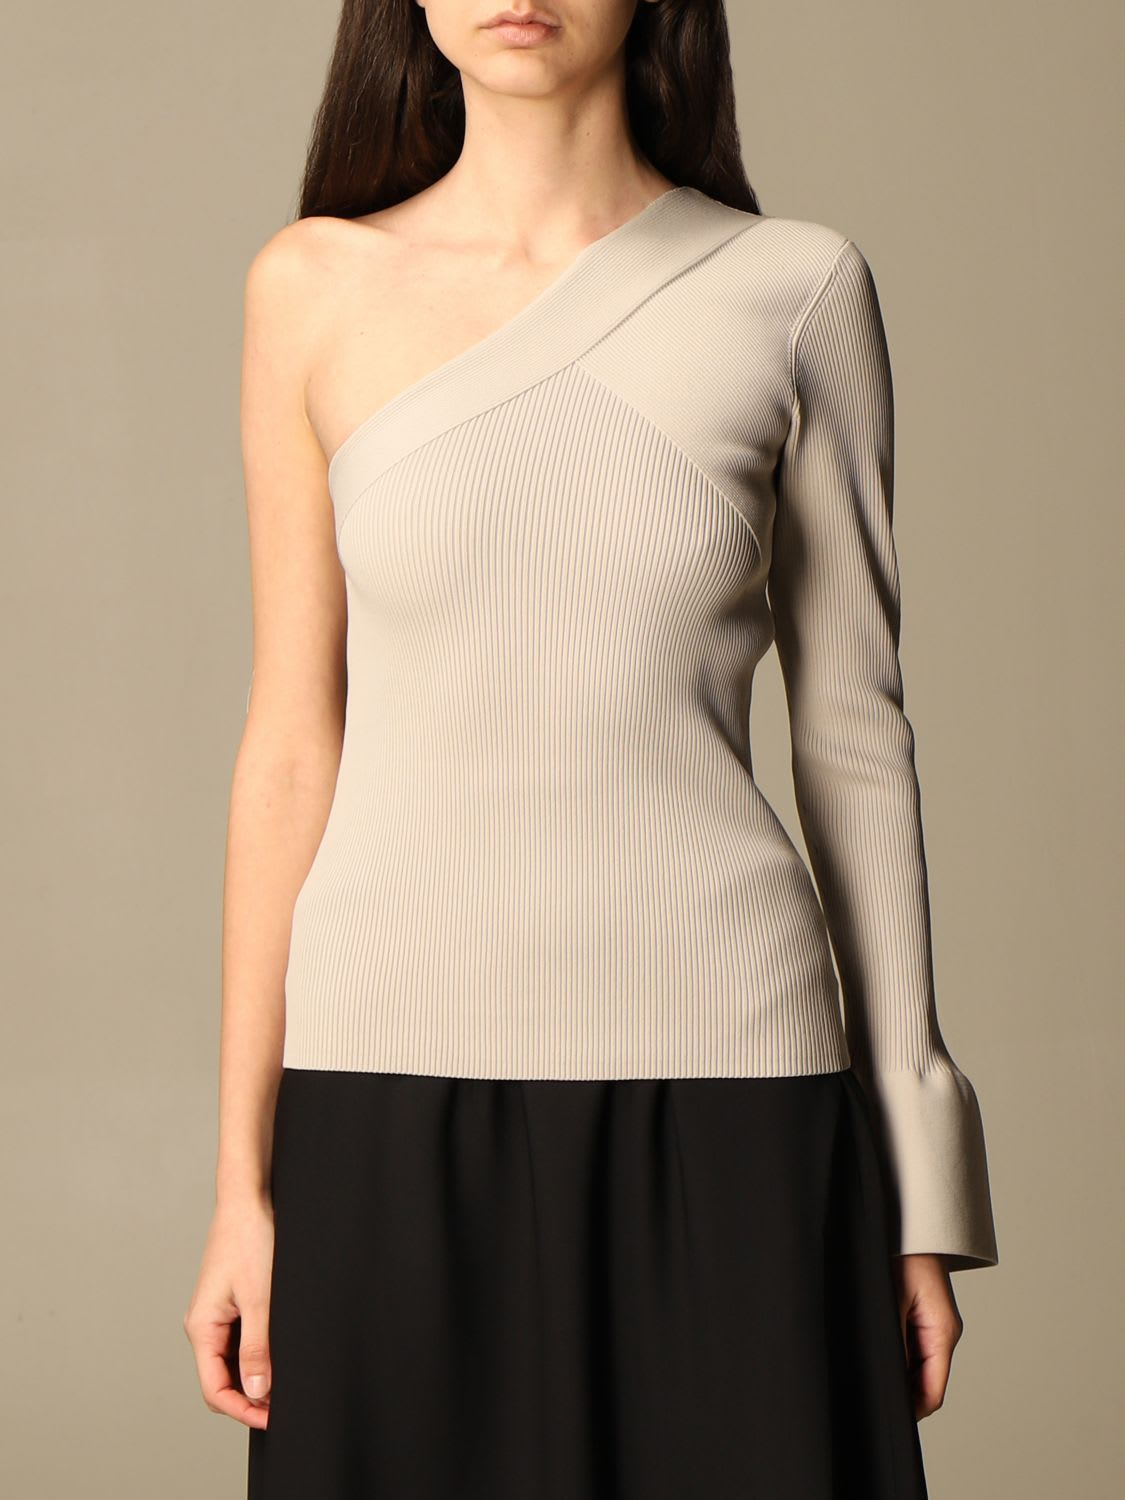 Theory Dress Stretch Ribbed Theory One-shoulder Sweater